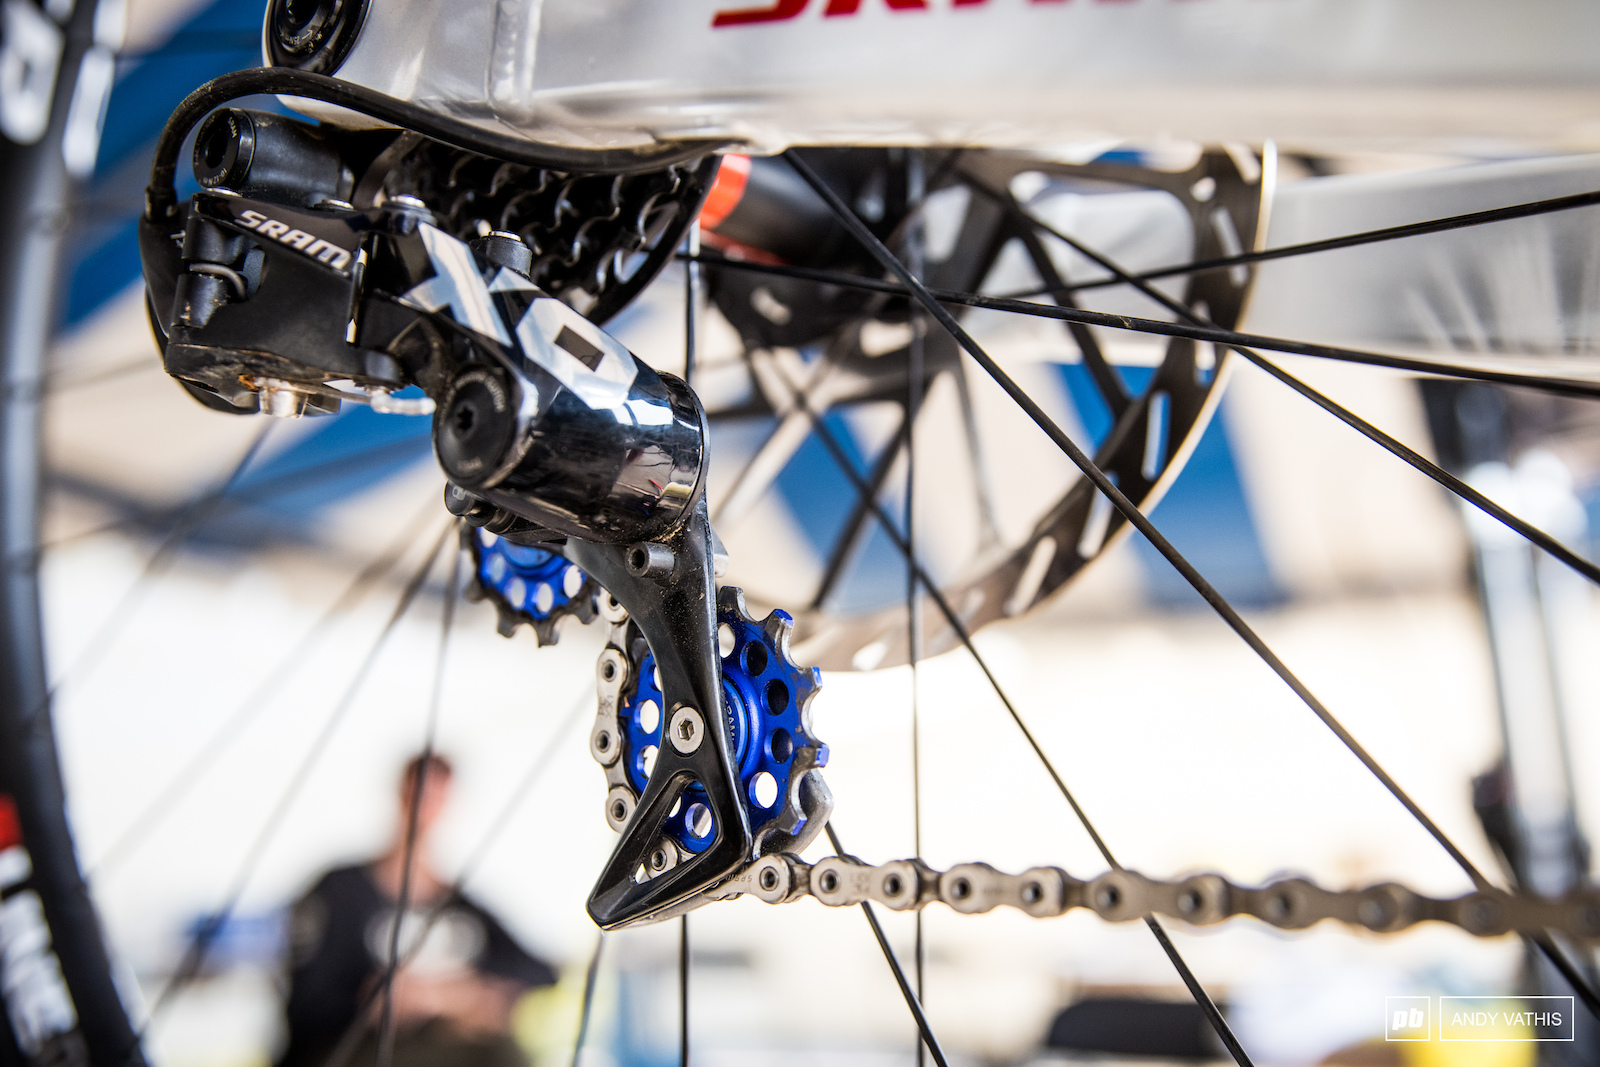 Chuck s bike also gets some touches of America for derailleur pulleys.